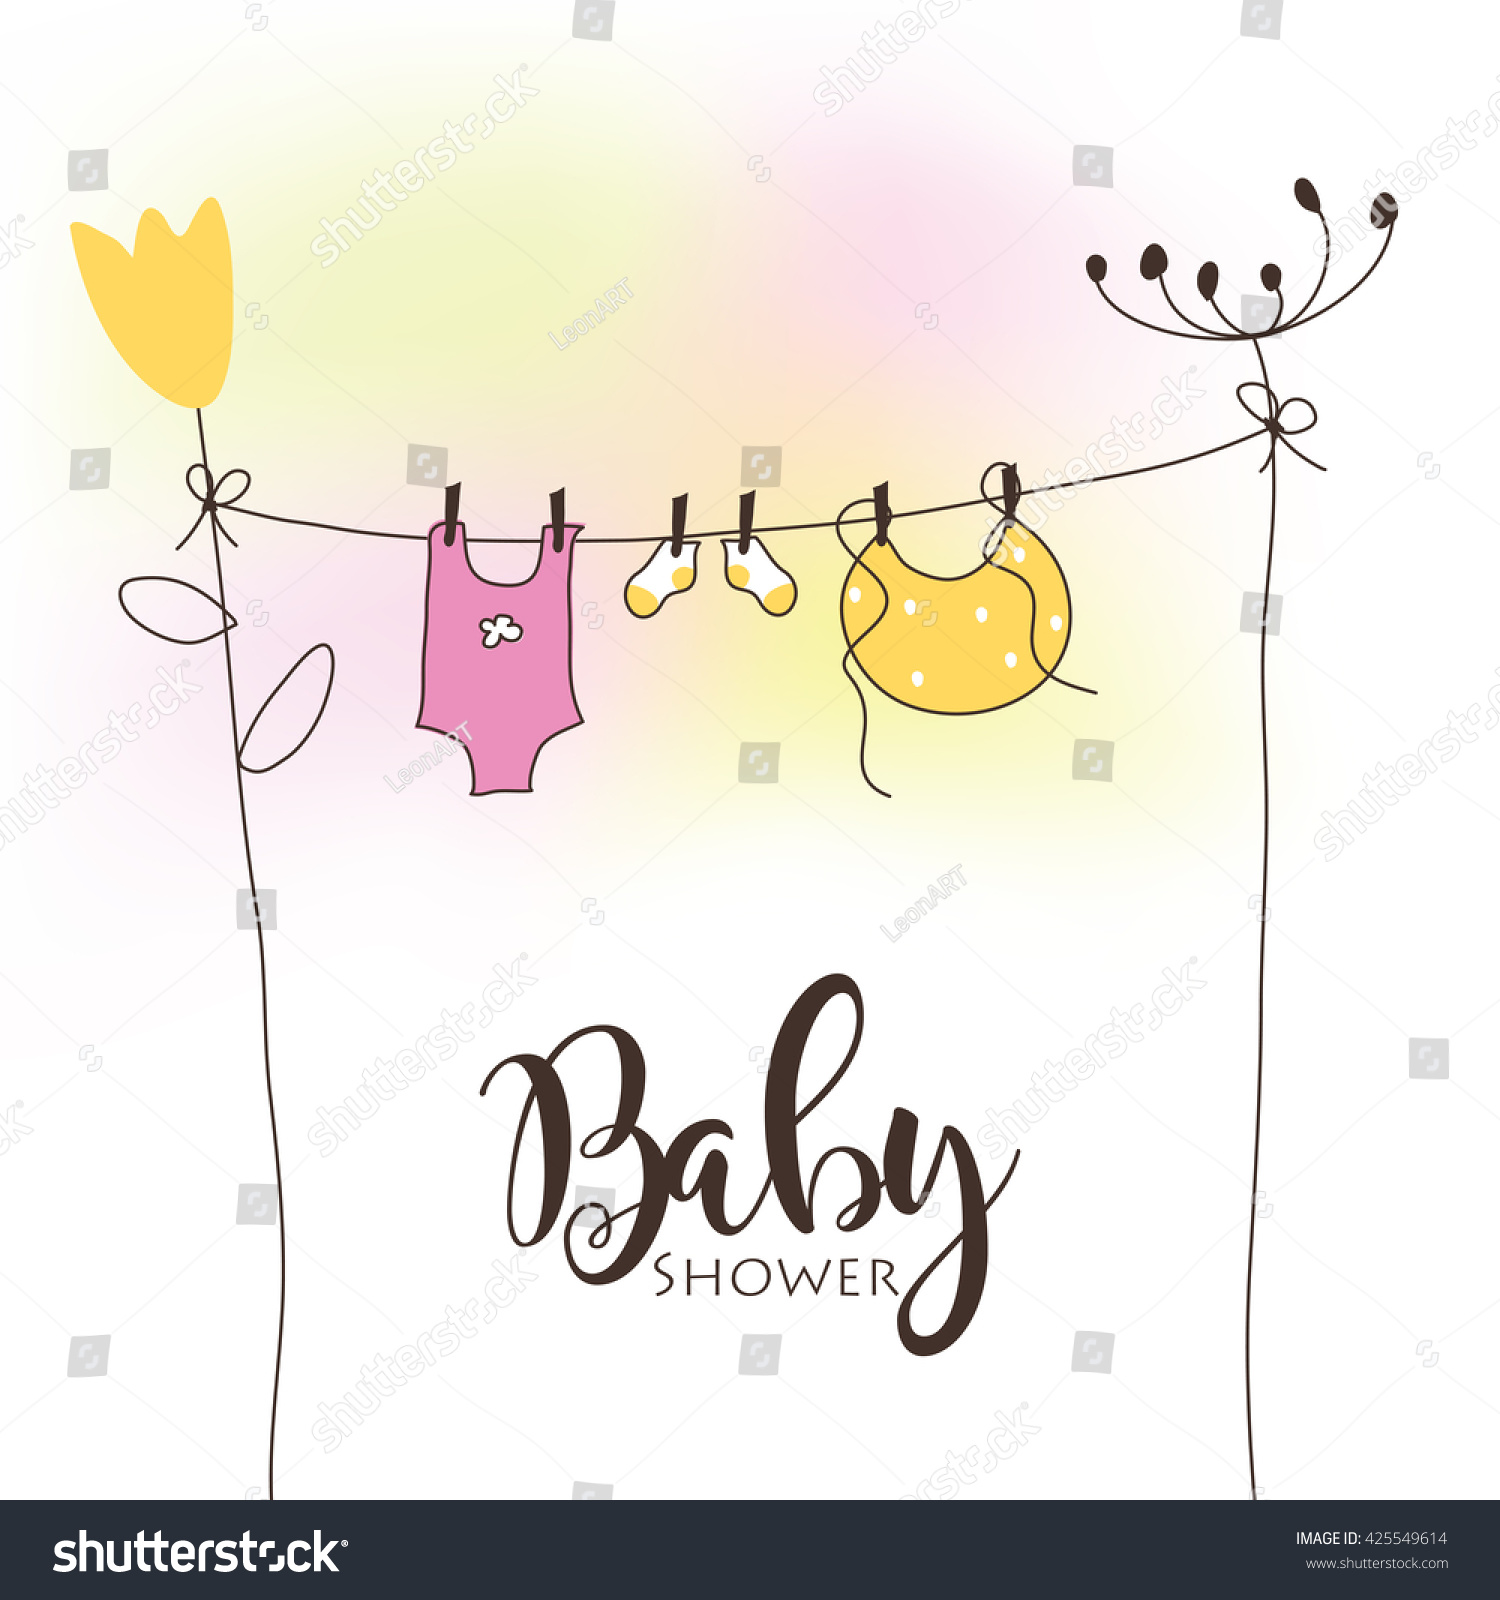 Greeting Card Template Baby Shower Greeting Card Template Free Greeting Card  Template Baby Shower Greeting Card